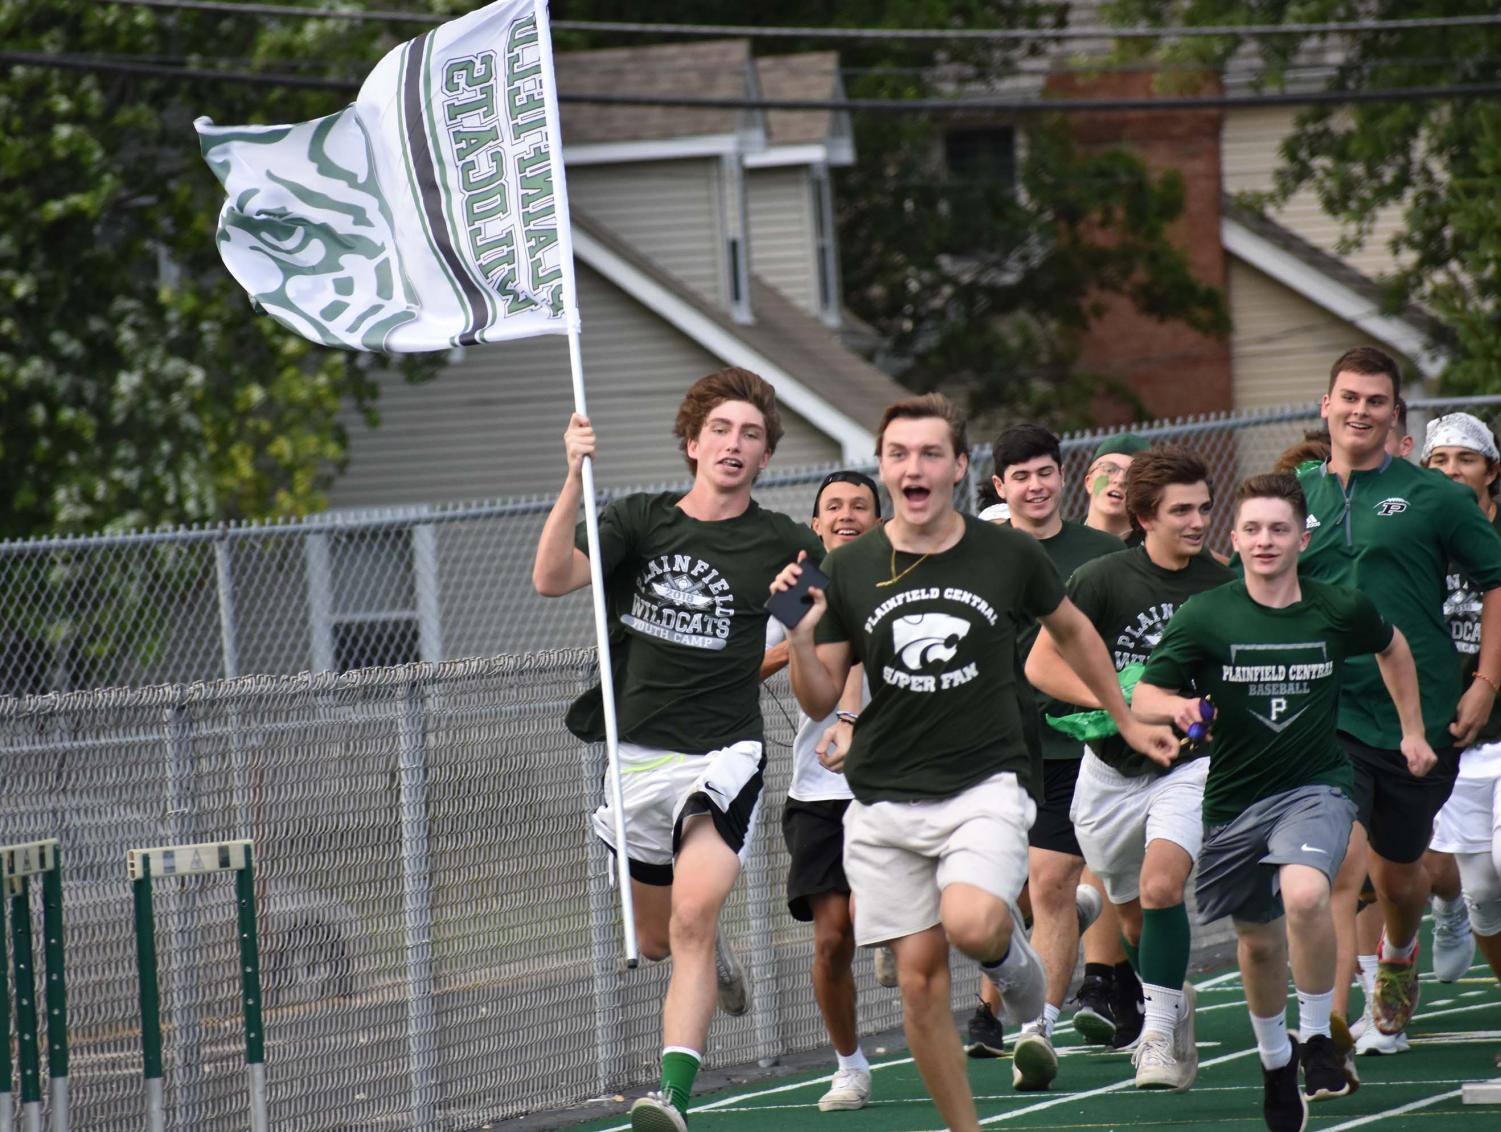 Senior+Billy+Schrage+leads+the+superfans+as+they+run+across+the+track+before+the+varsity+scrimmage.